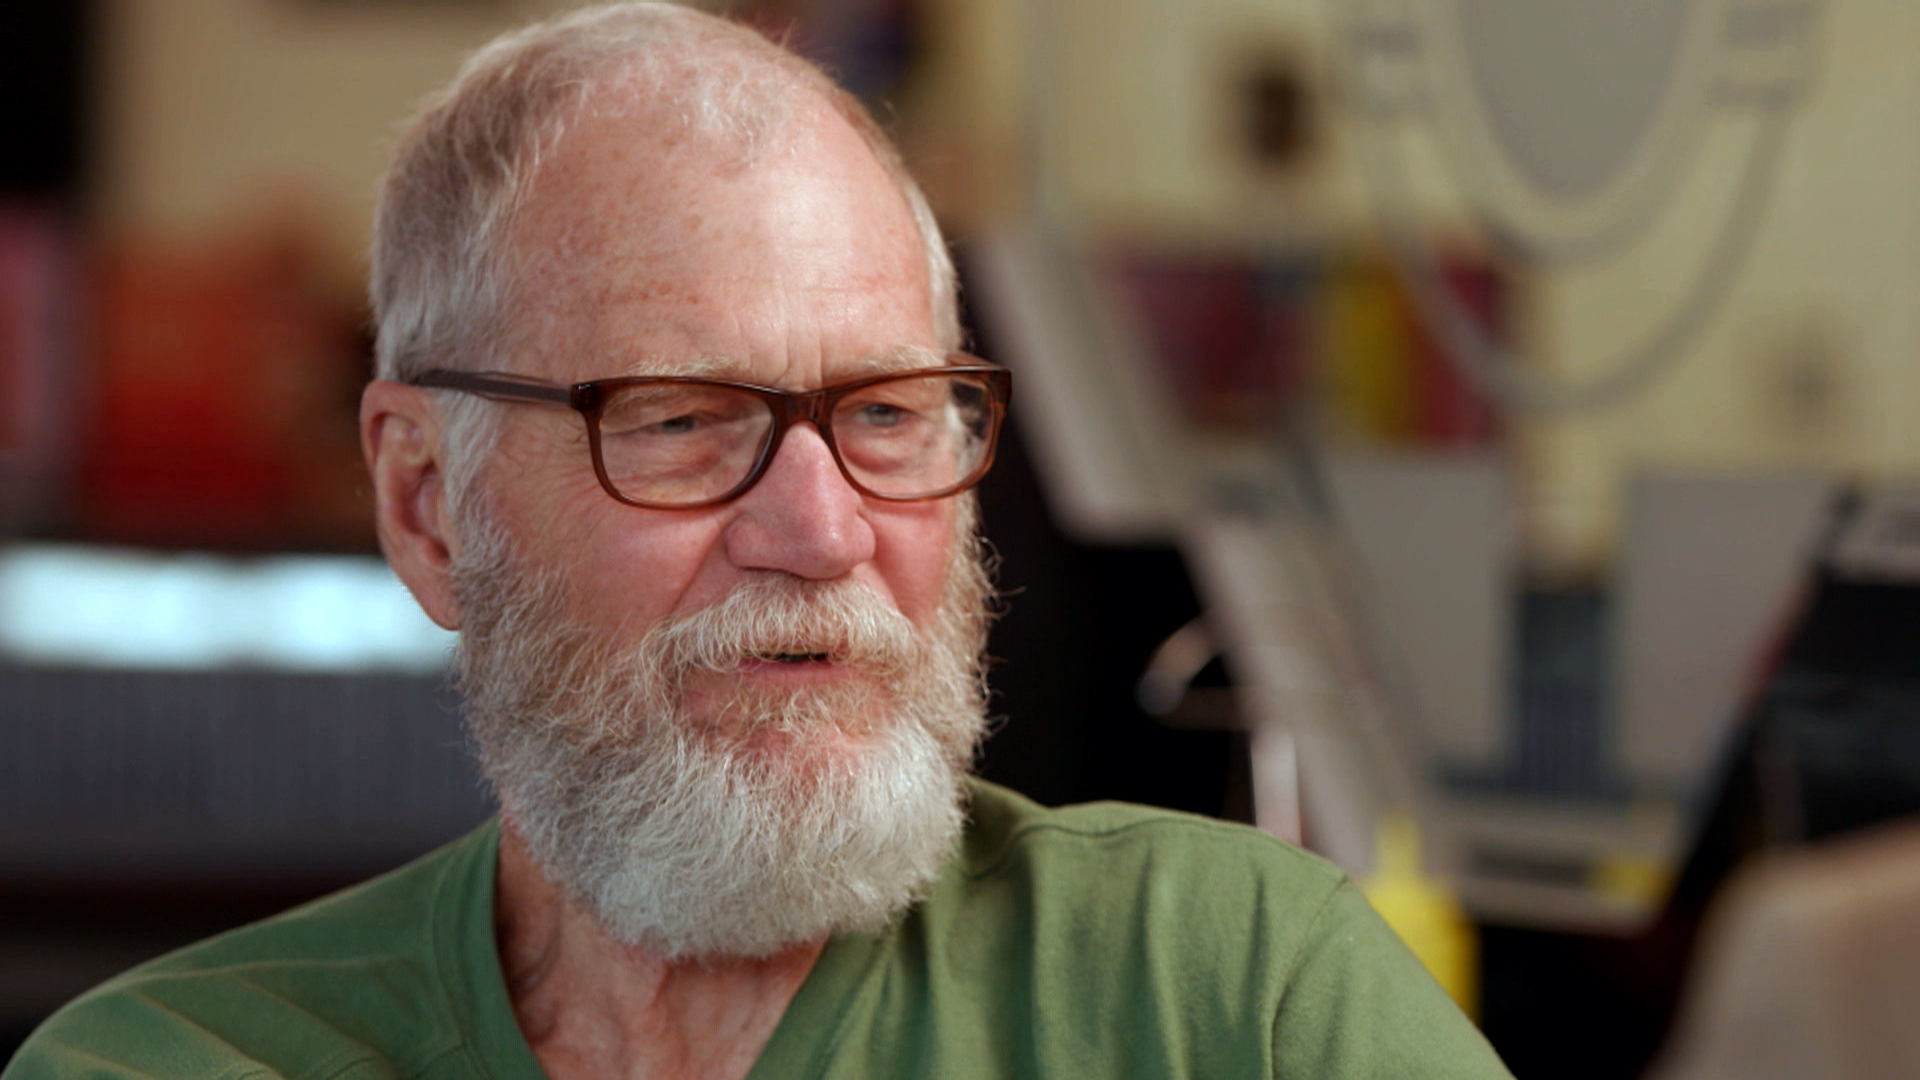 David Letterman Reveals Moment He Realized He Couldnt Care Less About Late Night TV